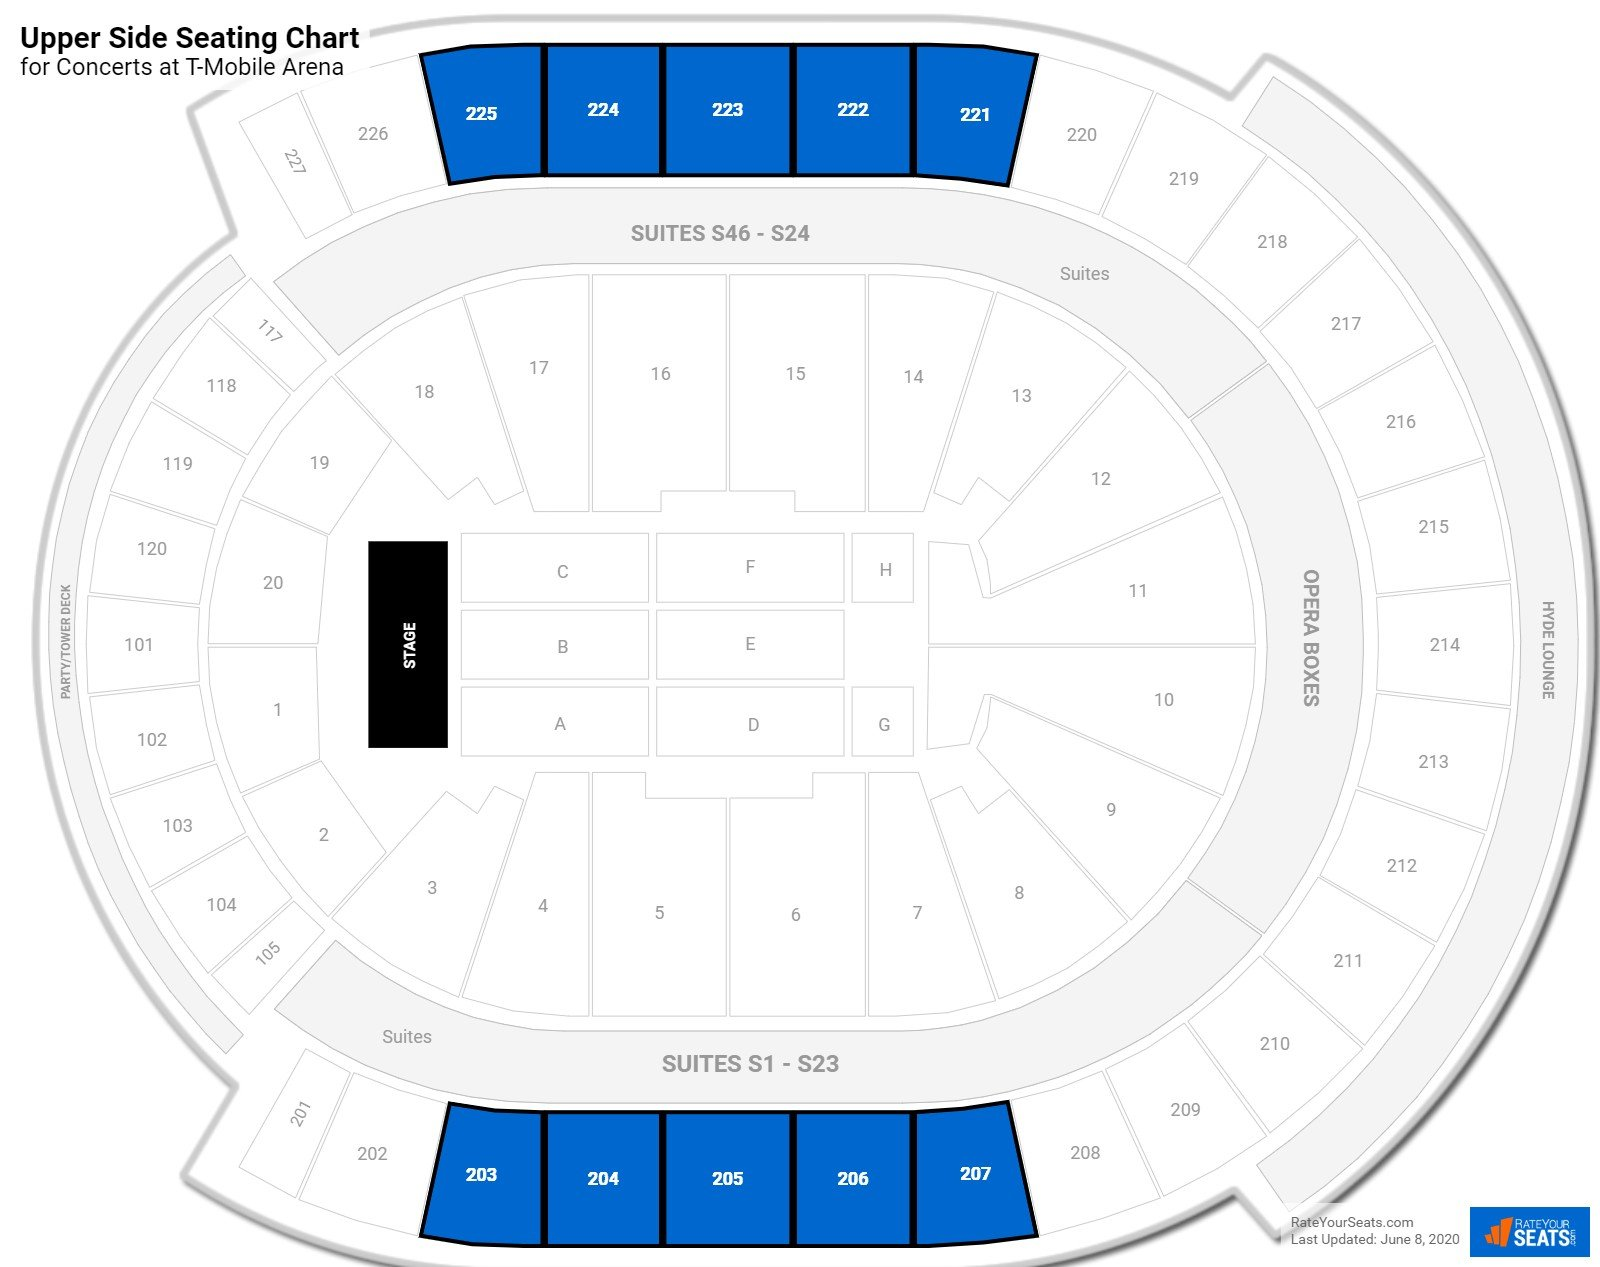 T-Mobile Arena Upper Side seating chart